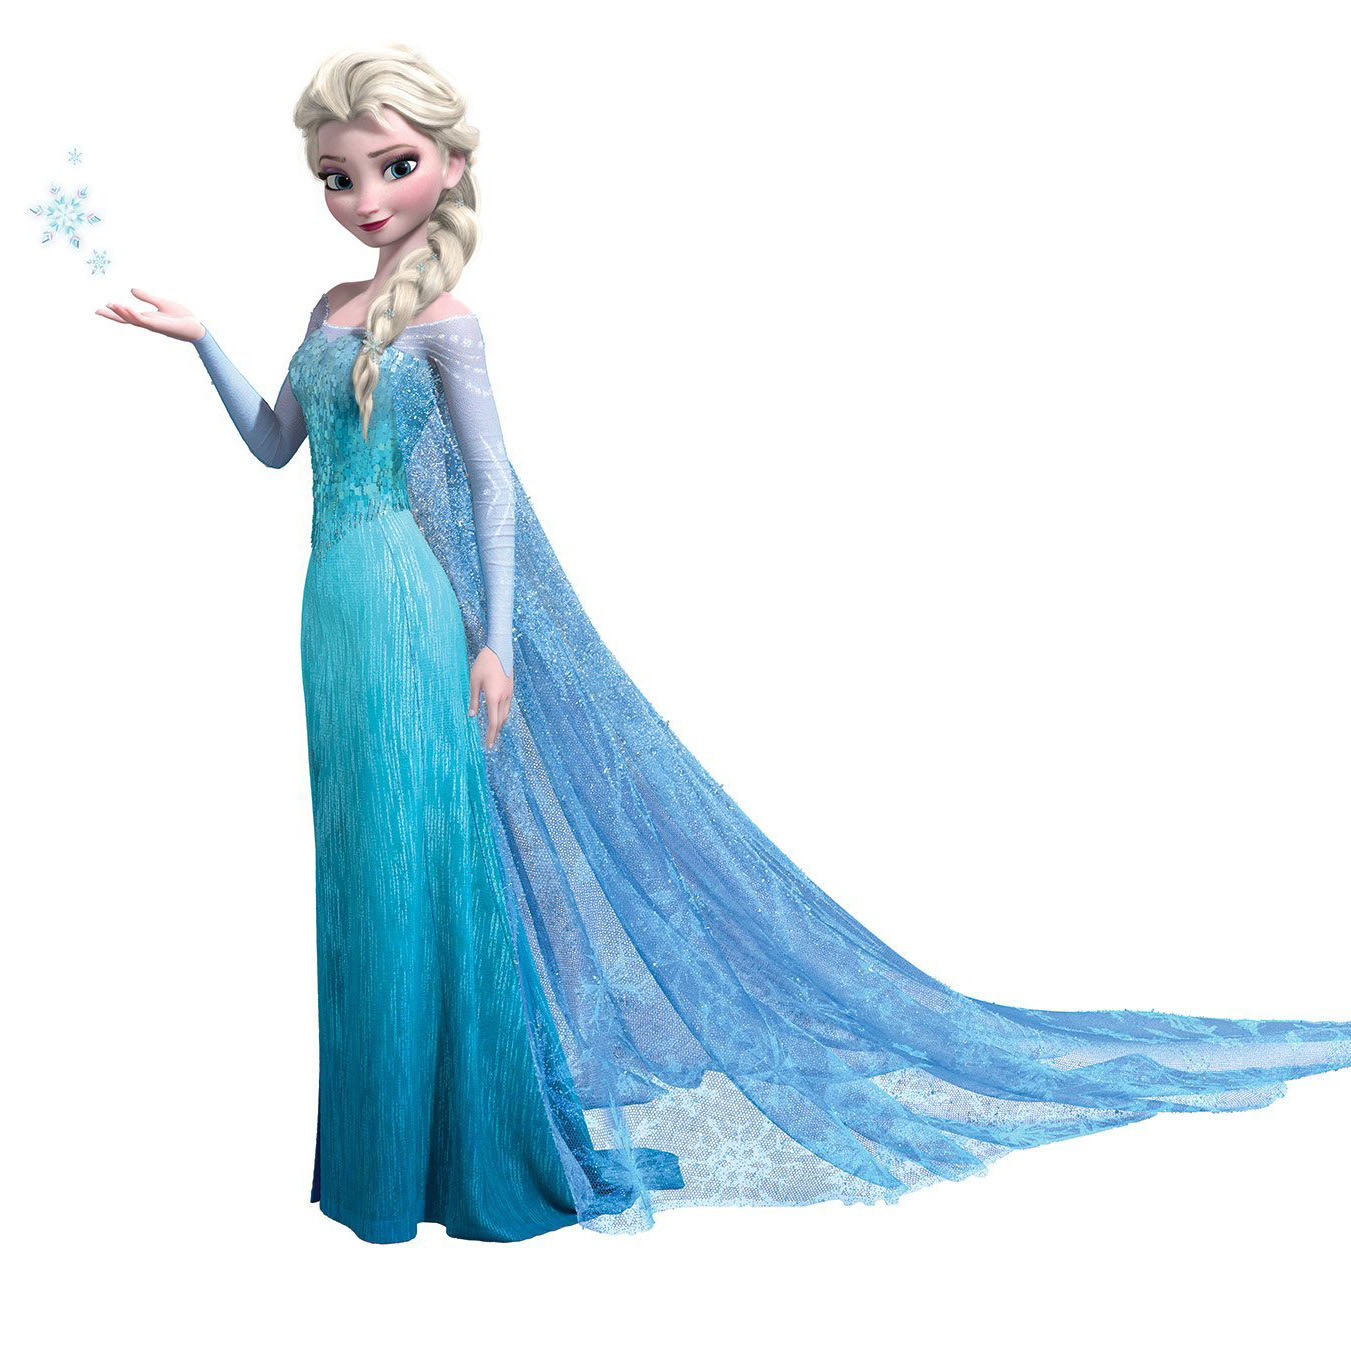 elsa-frozen-wall-decal.jpg